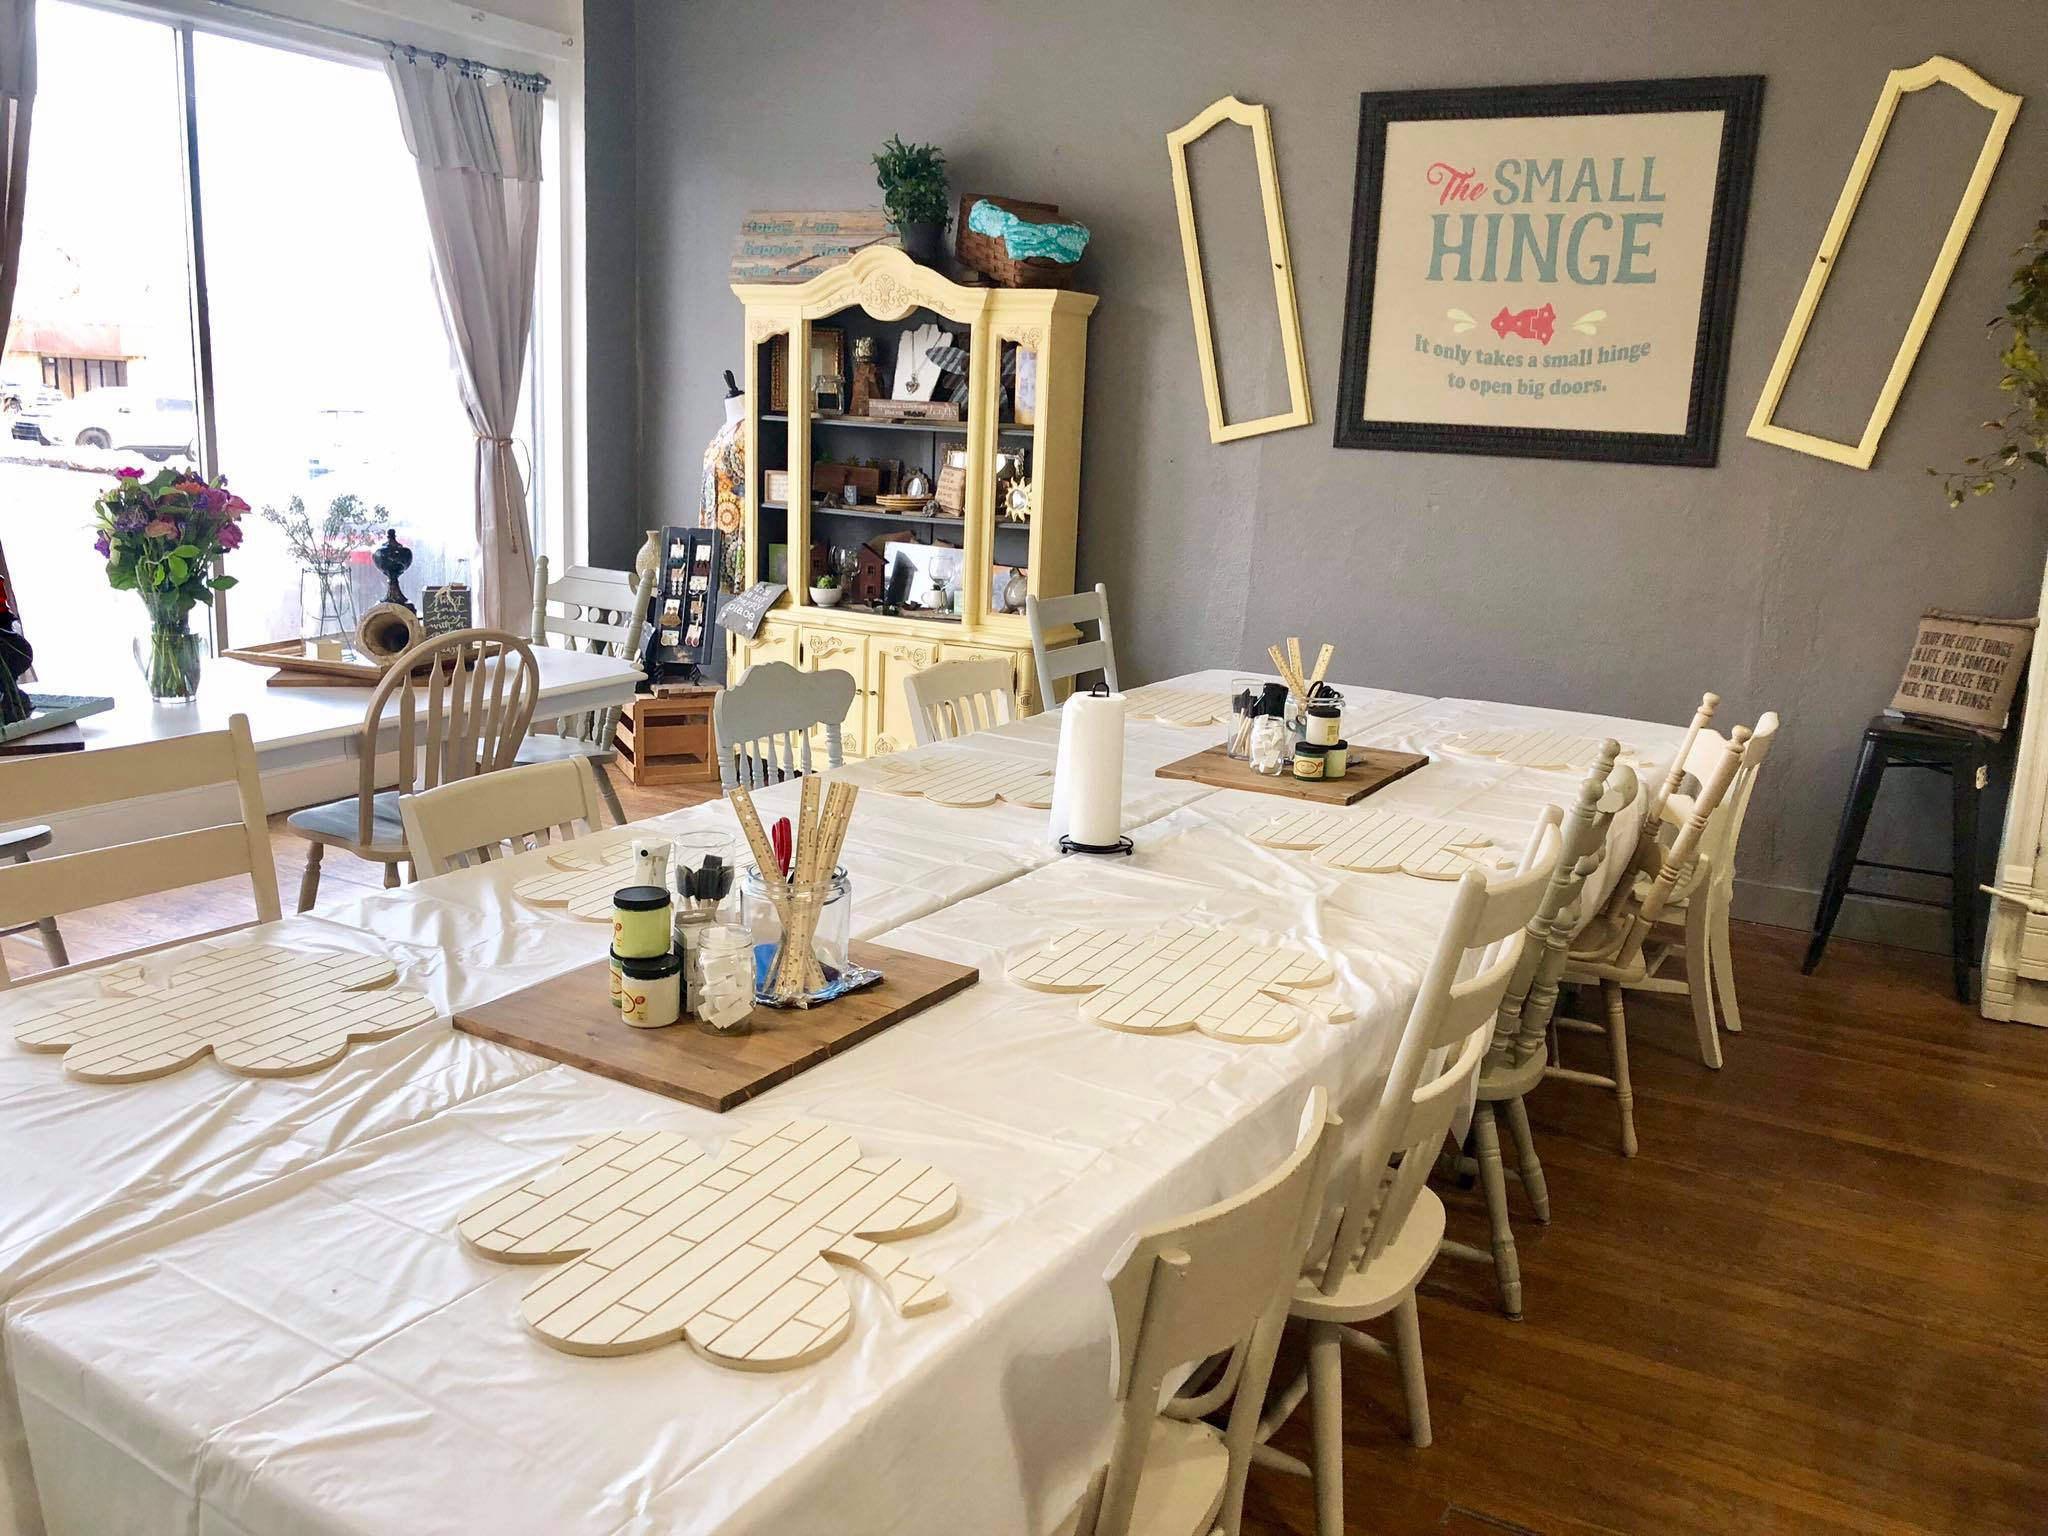 Book a Private Creative Party    Book your private creative party today! You can choose from one of our past projects or we can customize one for your group. Price varies based on project.    For more details - please message us on Facebook    HERE    or call 913-667-3323